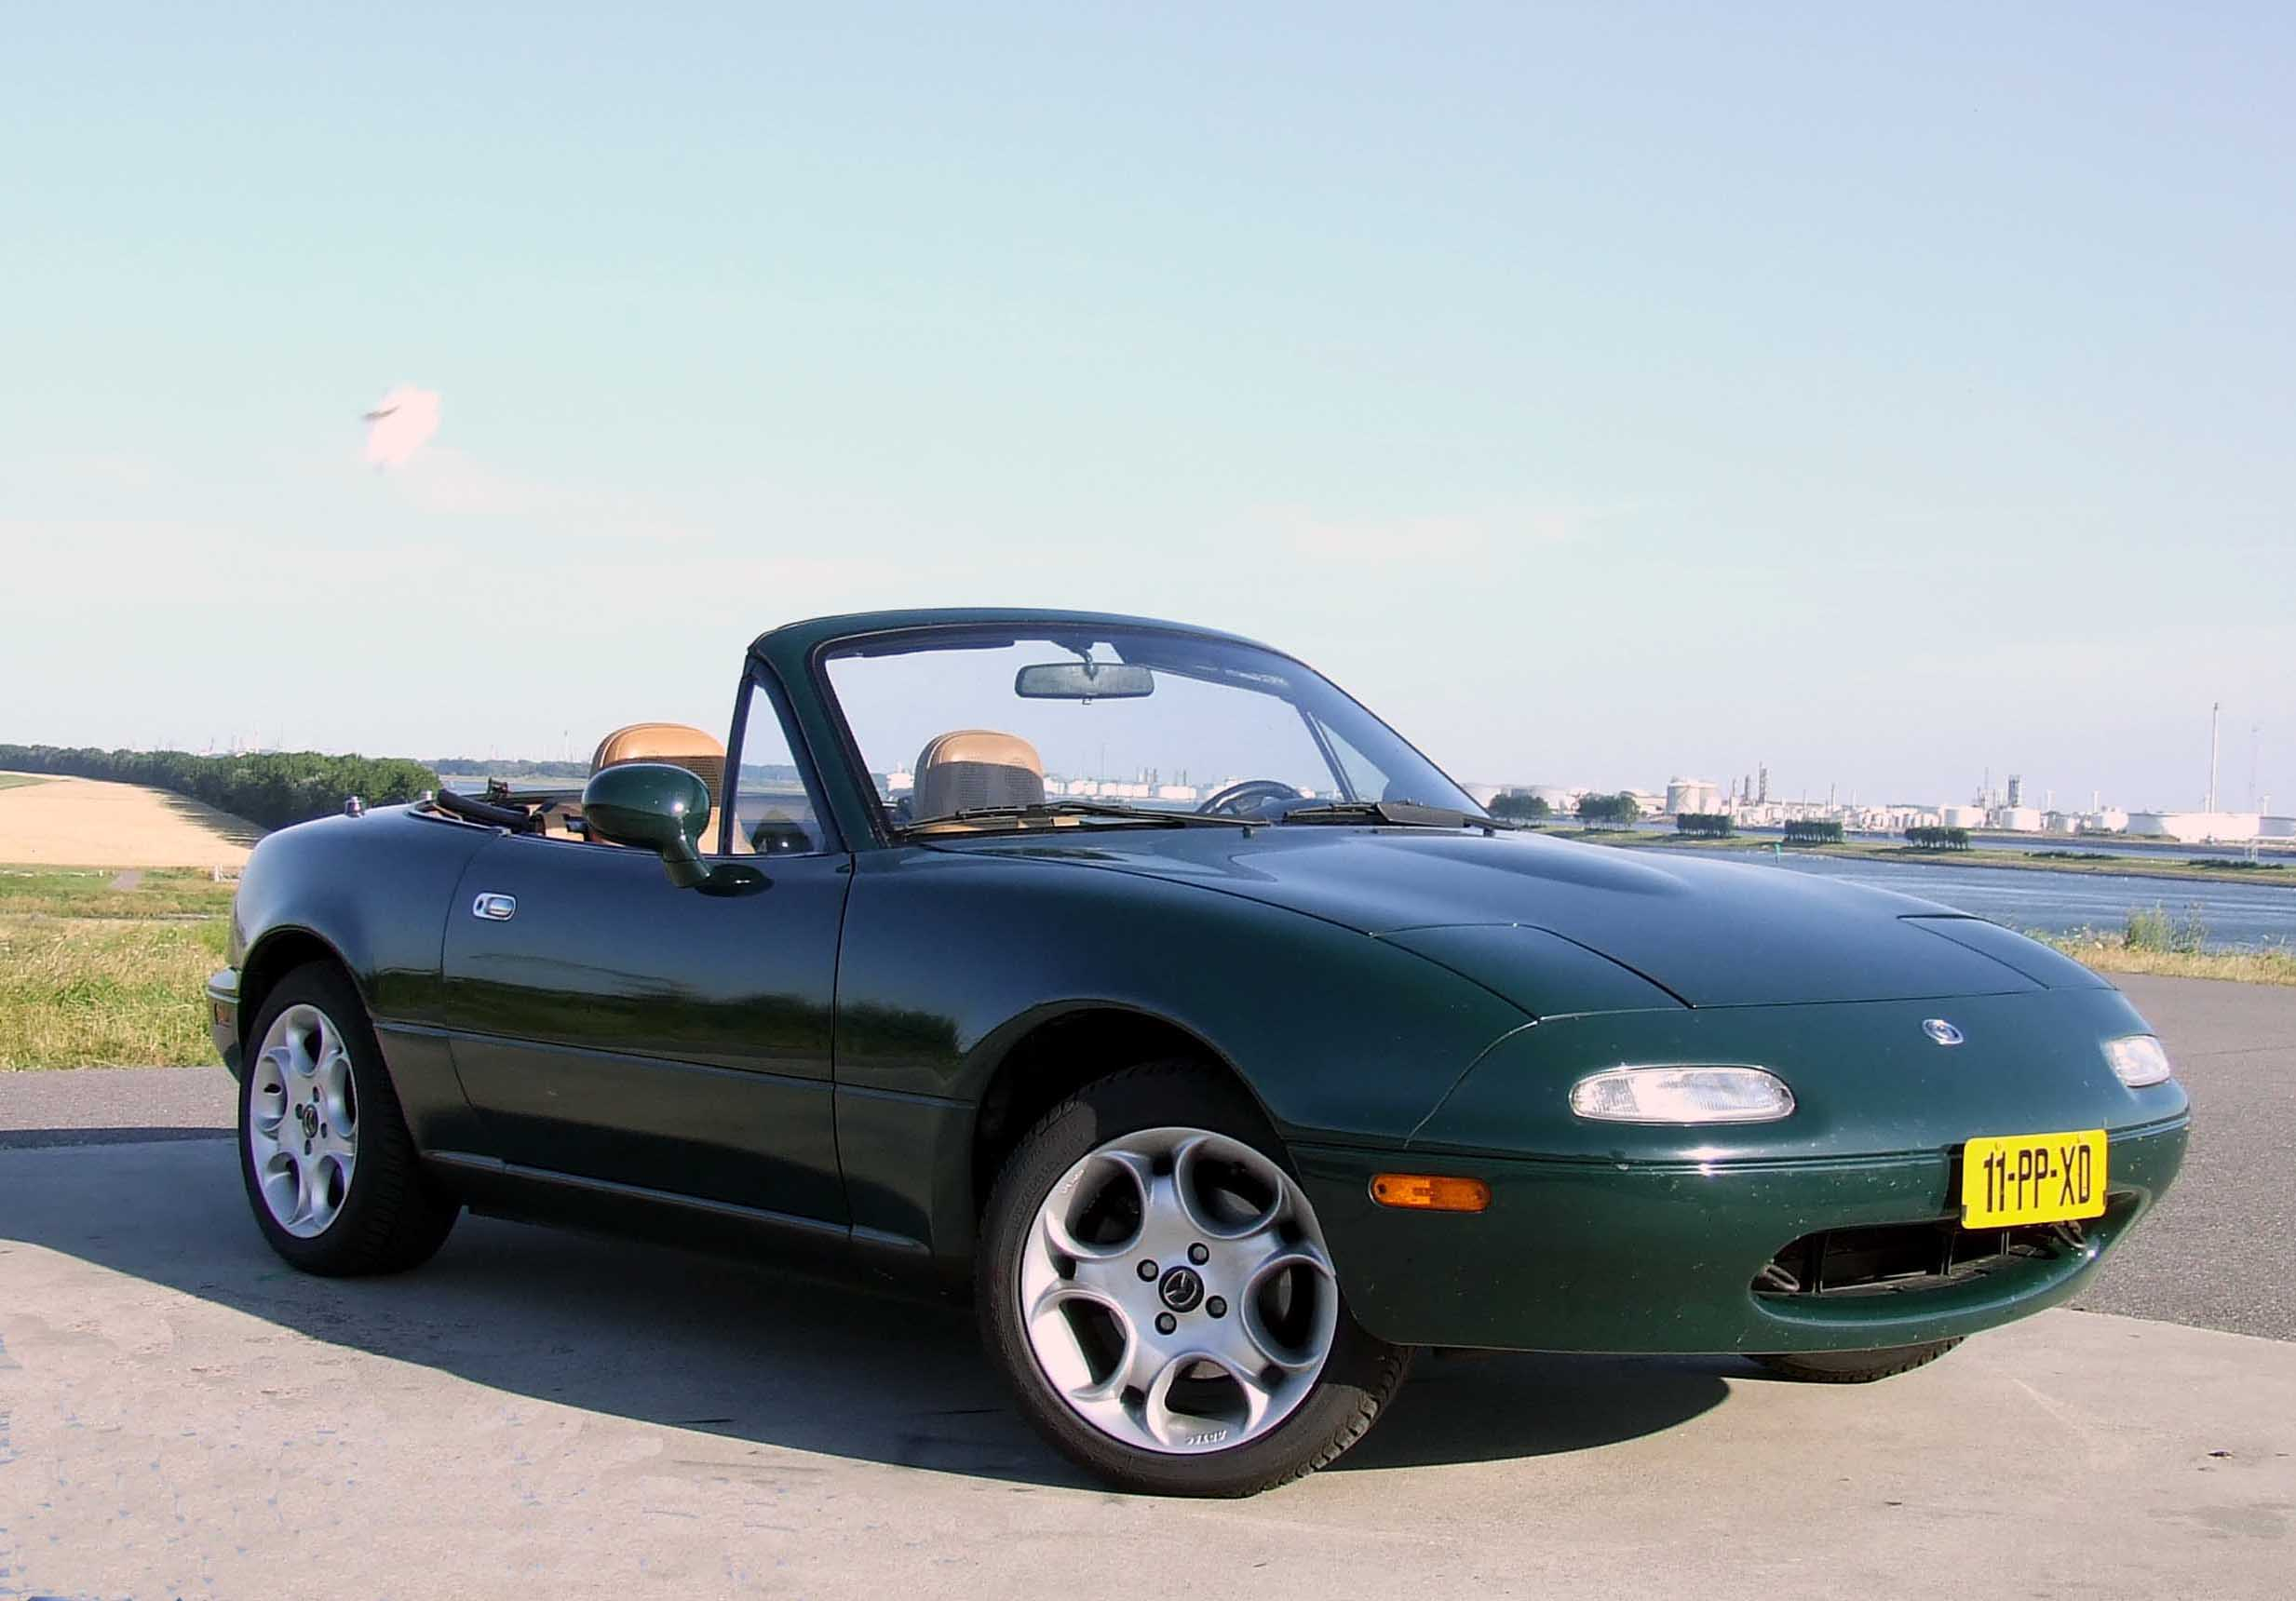 Mazda mx5 1994 | Flickr - Photo Sharing!